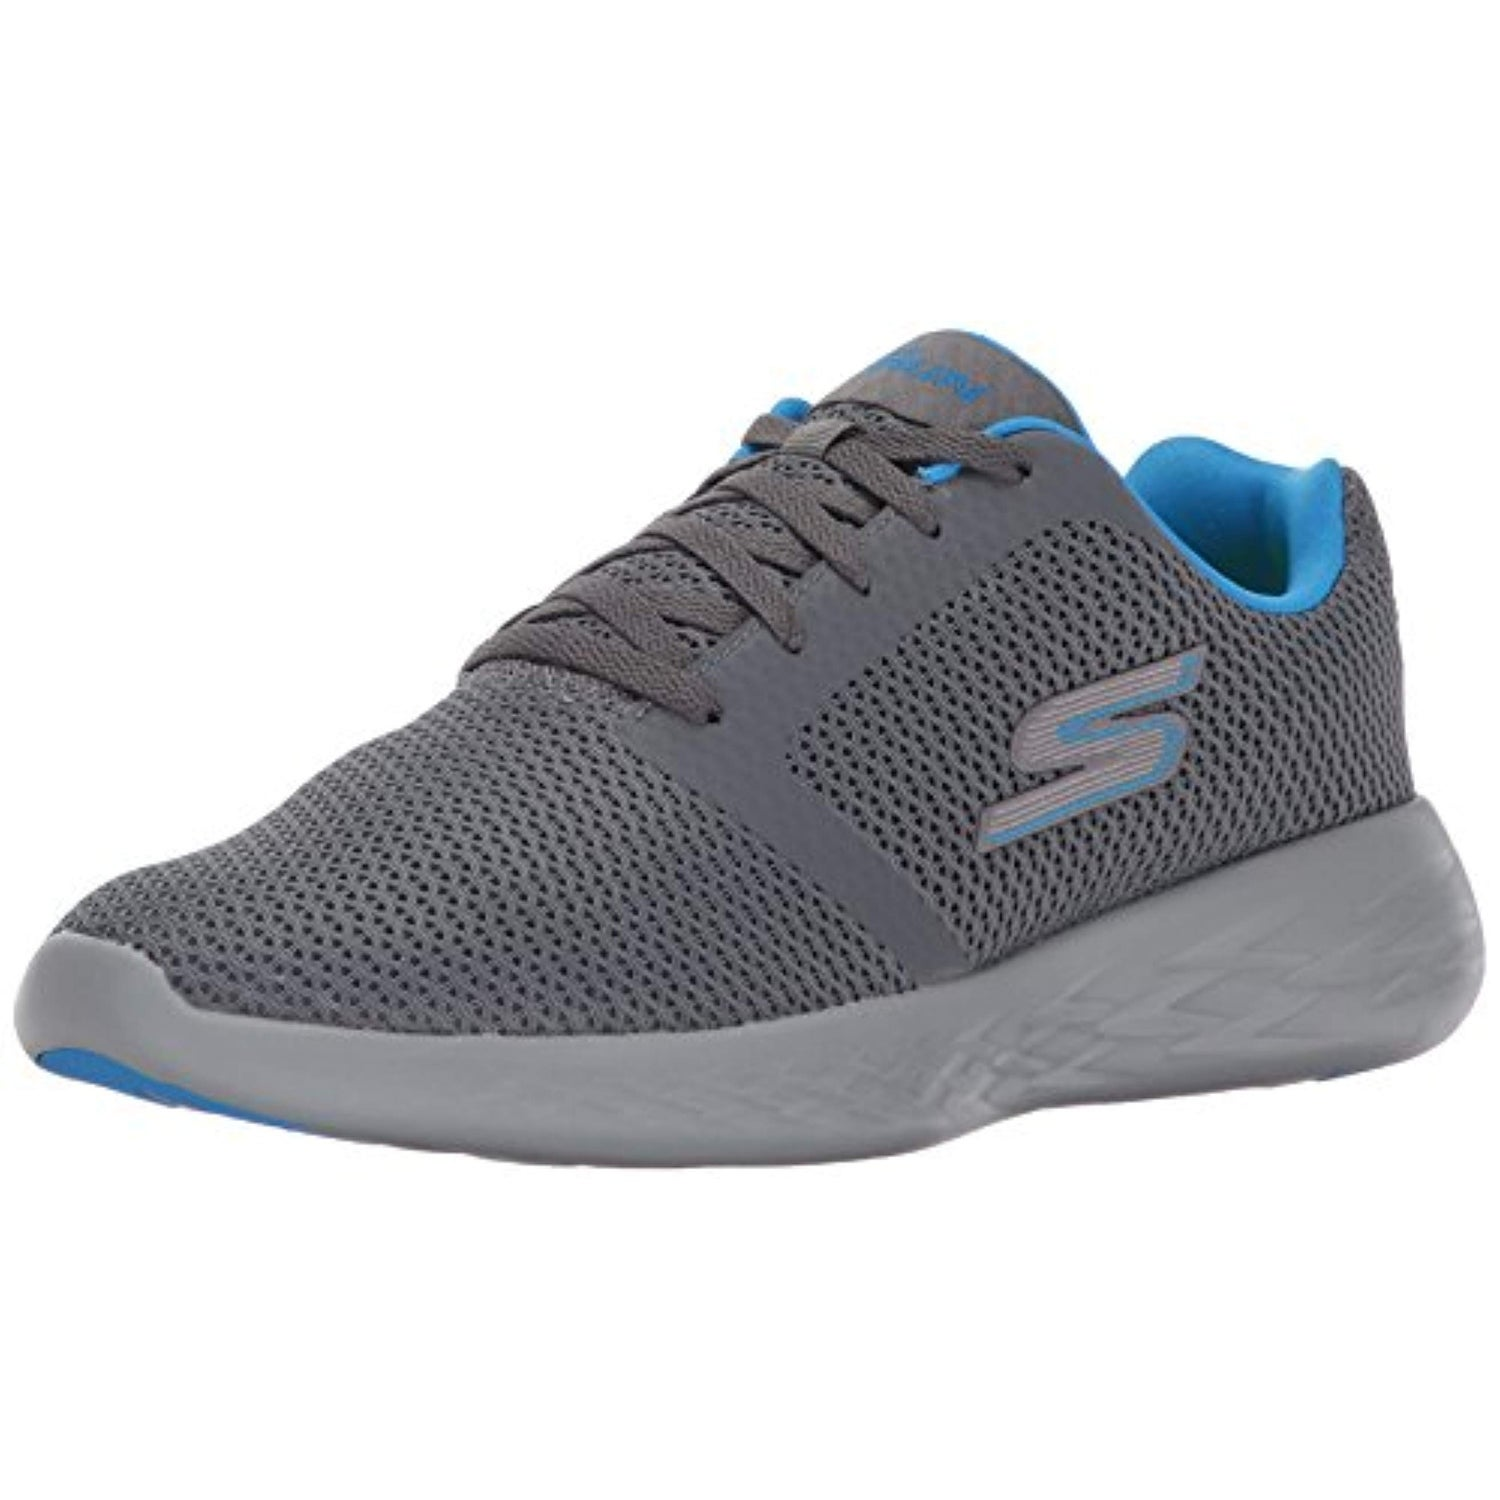 Buy Men's Athletic Shoes Online at Overstock | Our Best